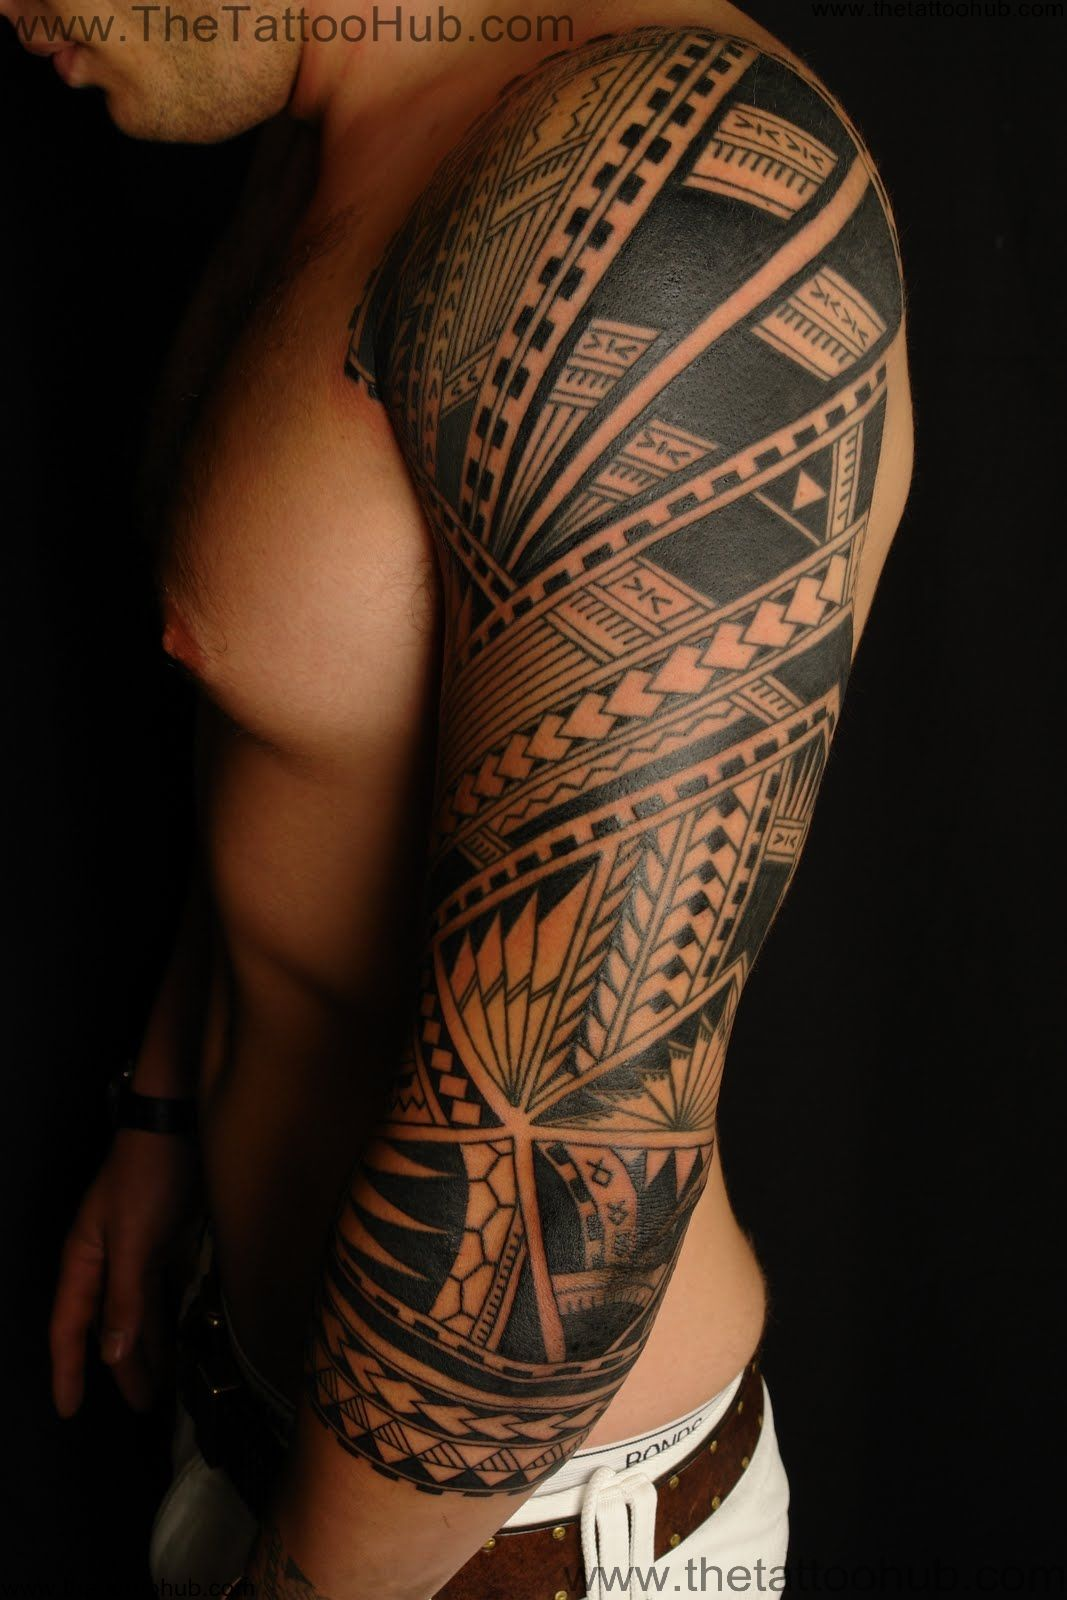 tattoos tribal stencils historians a for many of have been intrigue source tattoos Polynesian